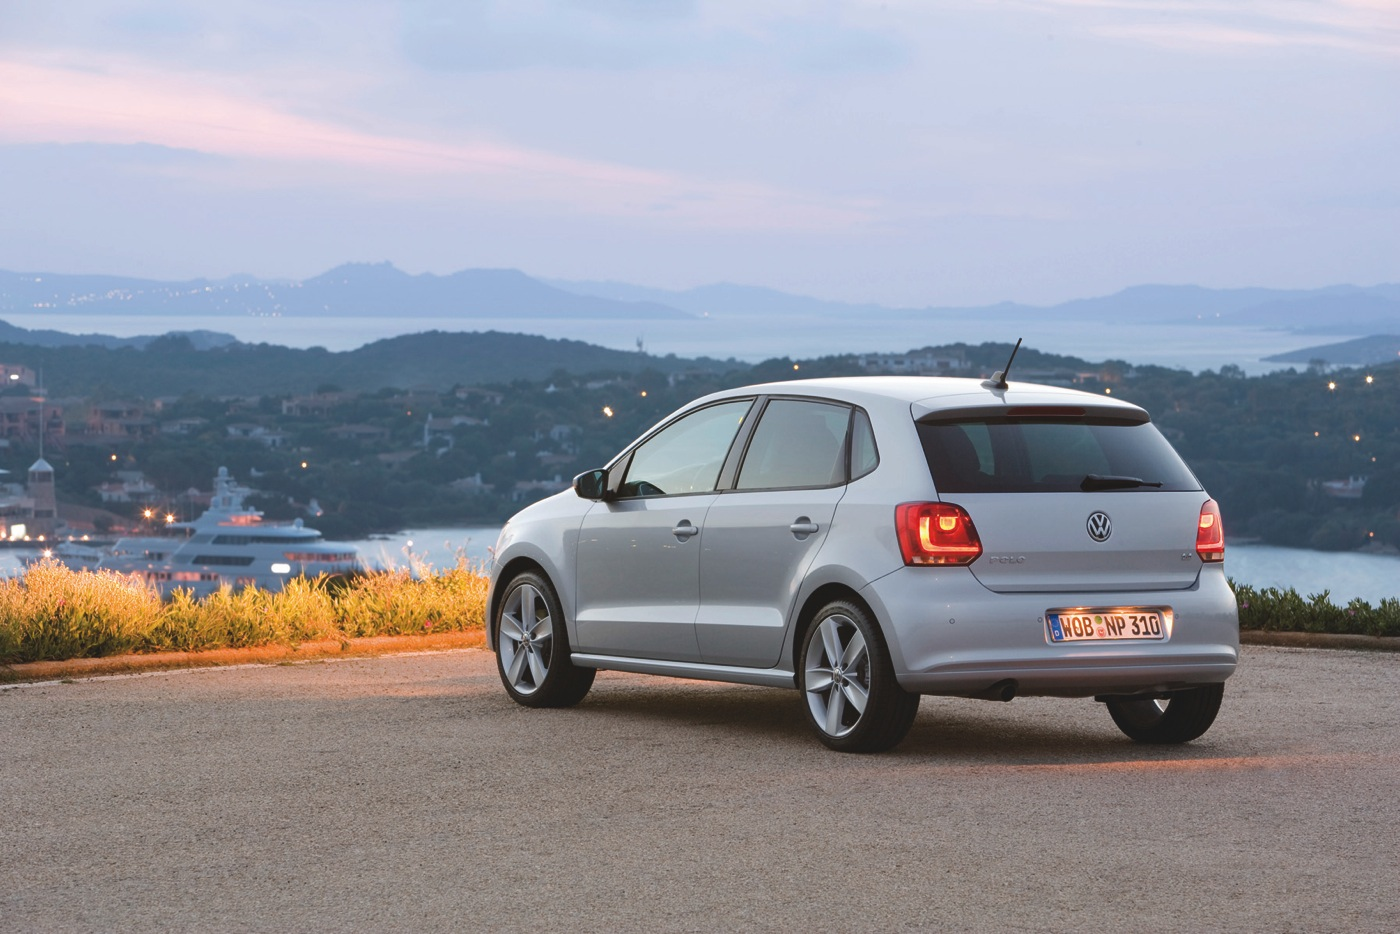 Vw Polo Dad Advertisement: Is Vw Polo A Safe Car?